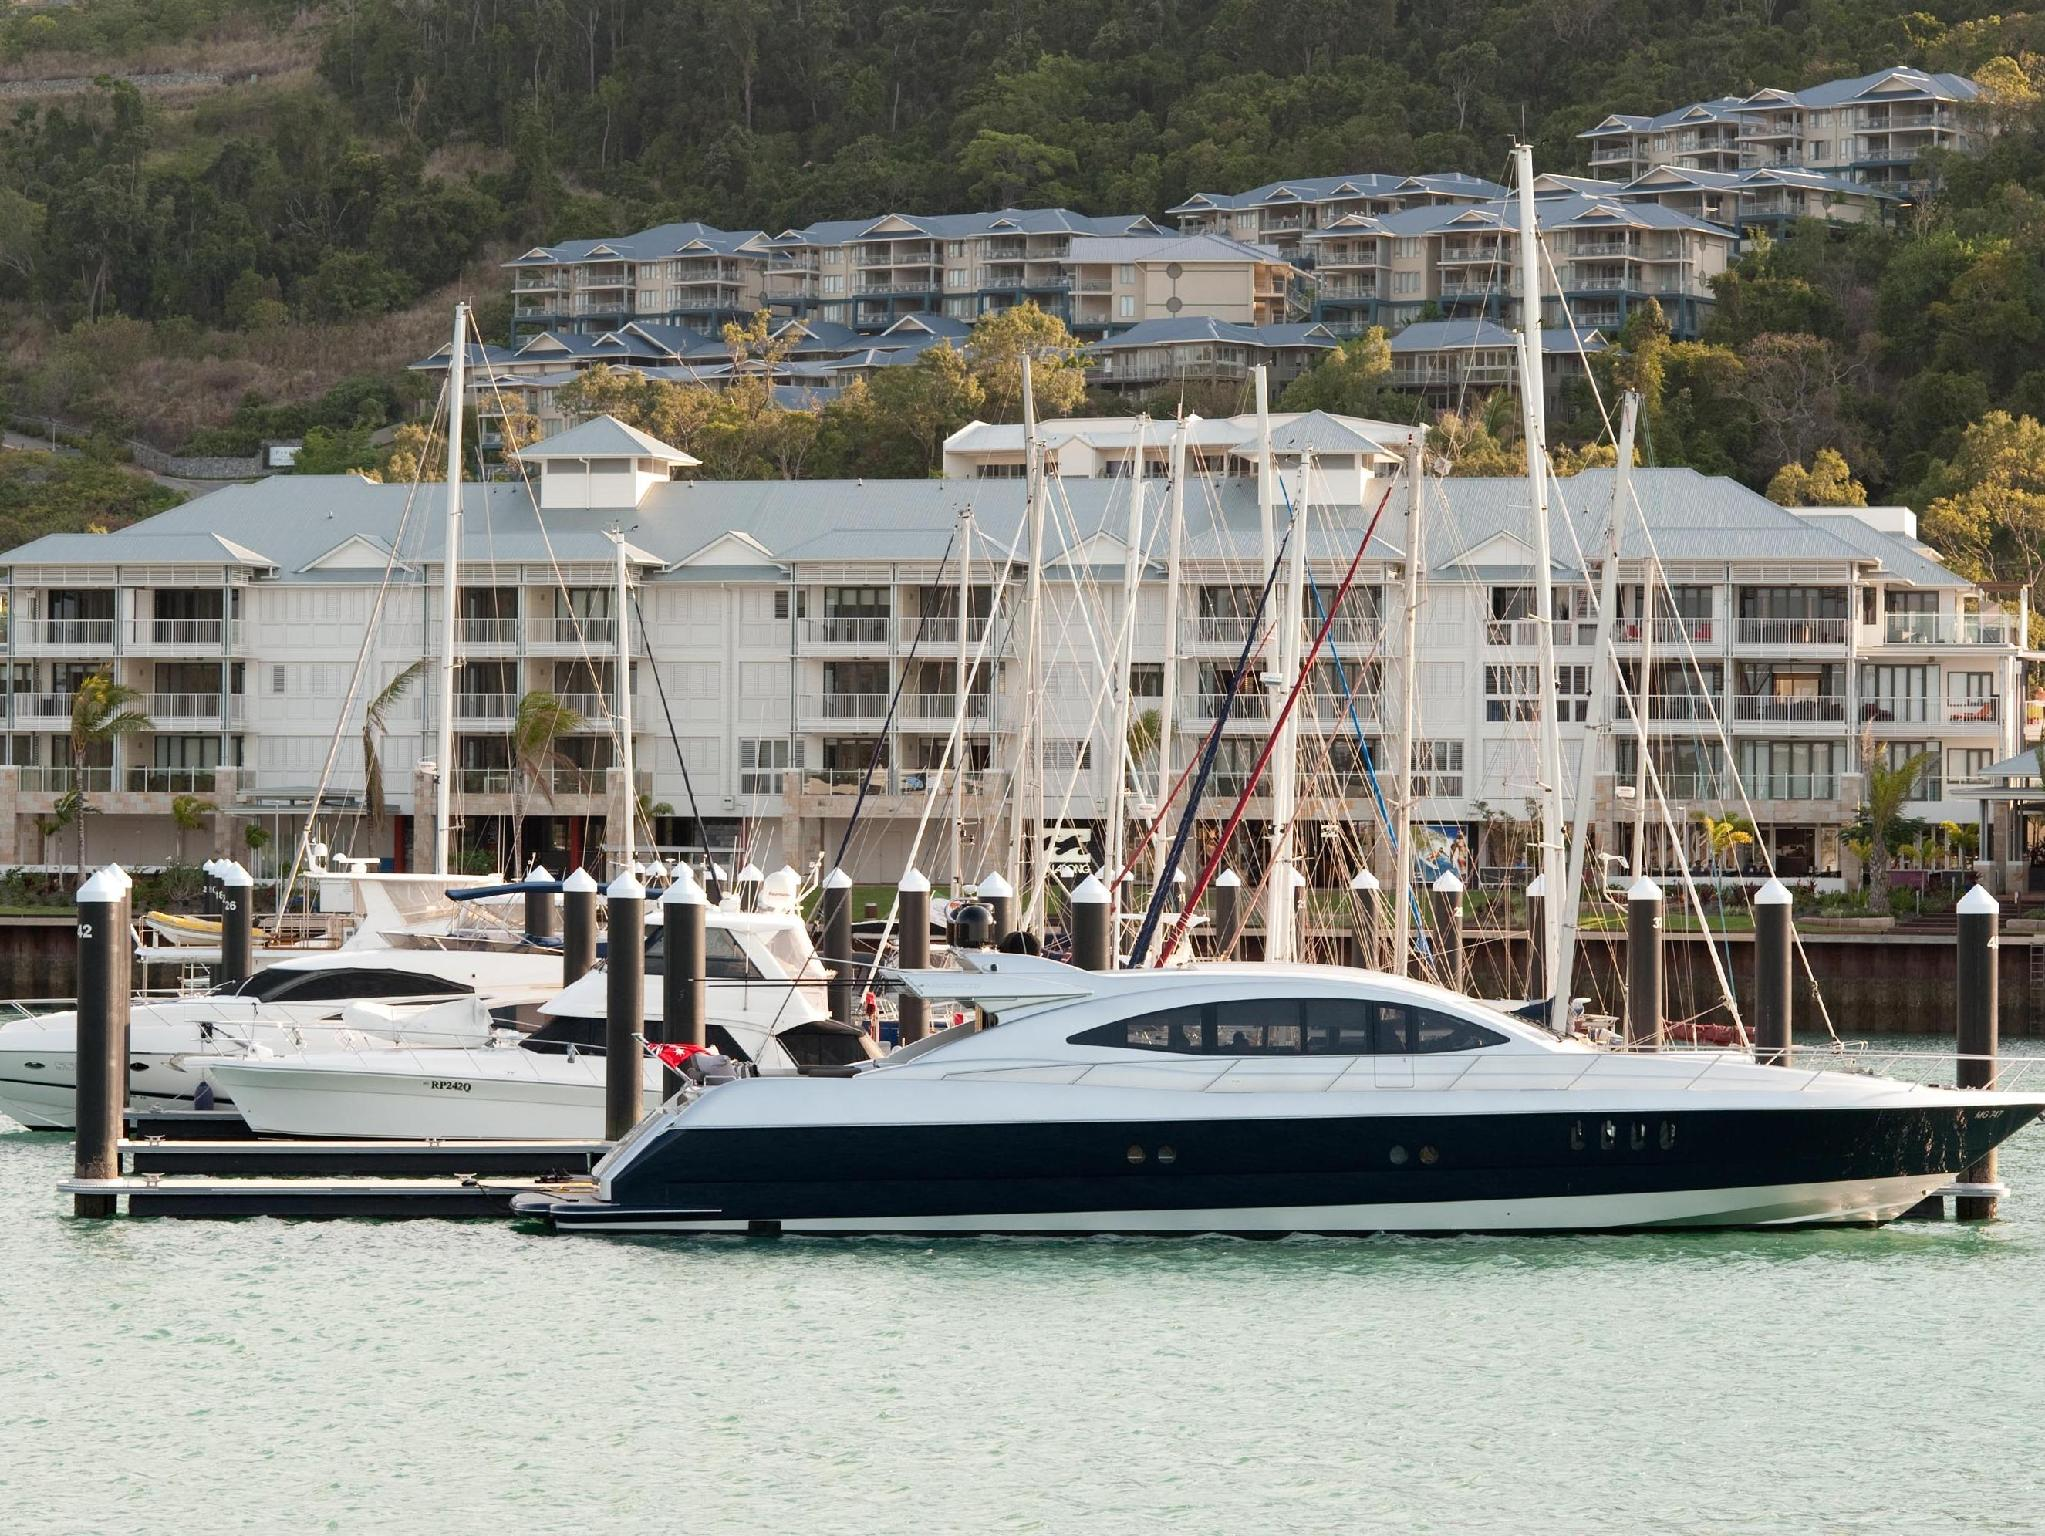 Boathouse Apartments by Outrigger Whitsundays